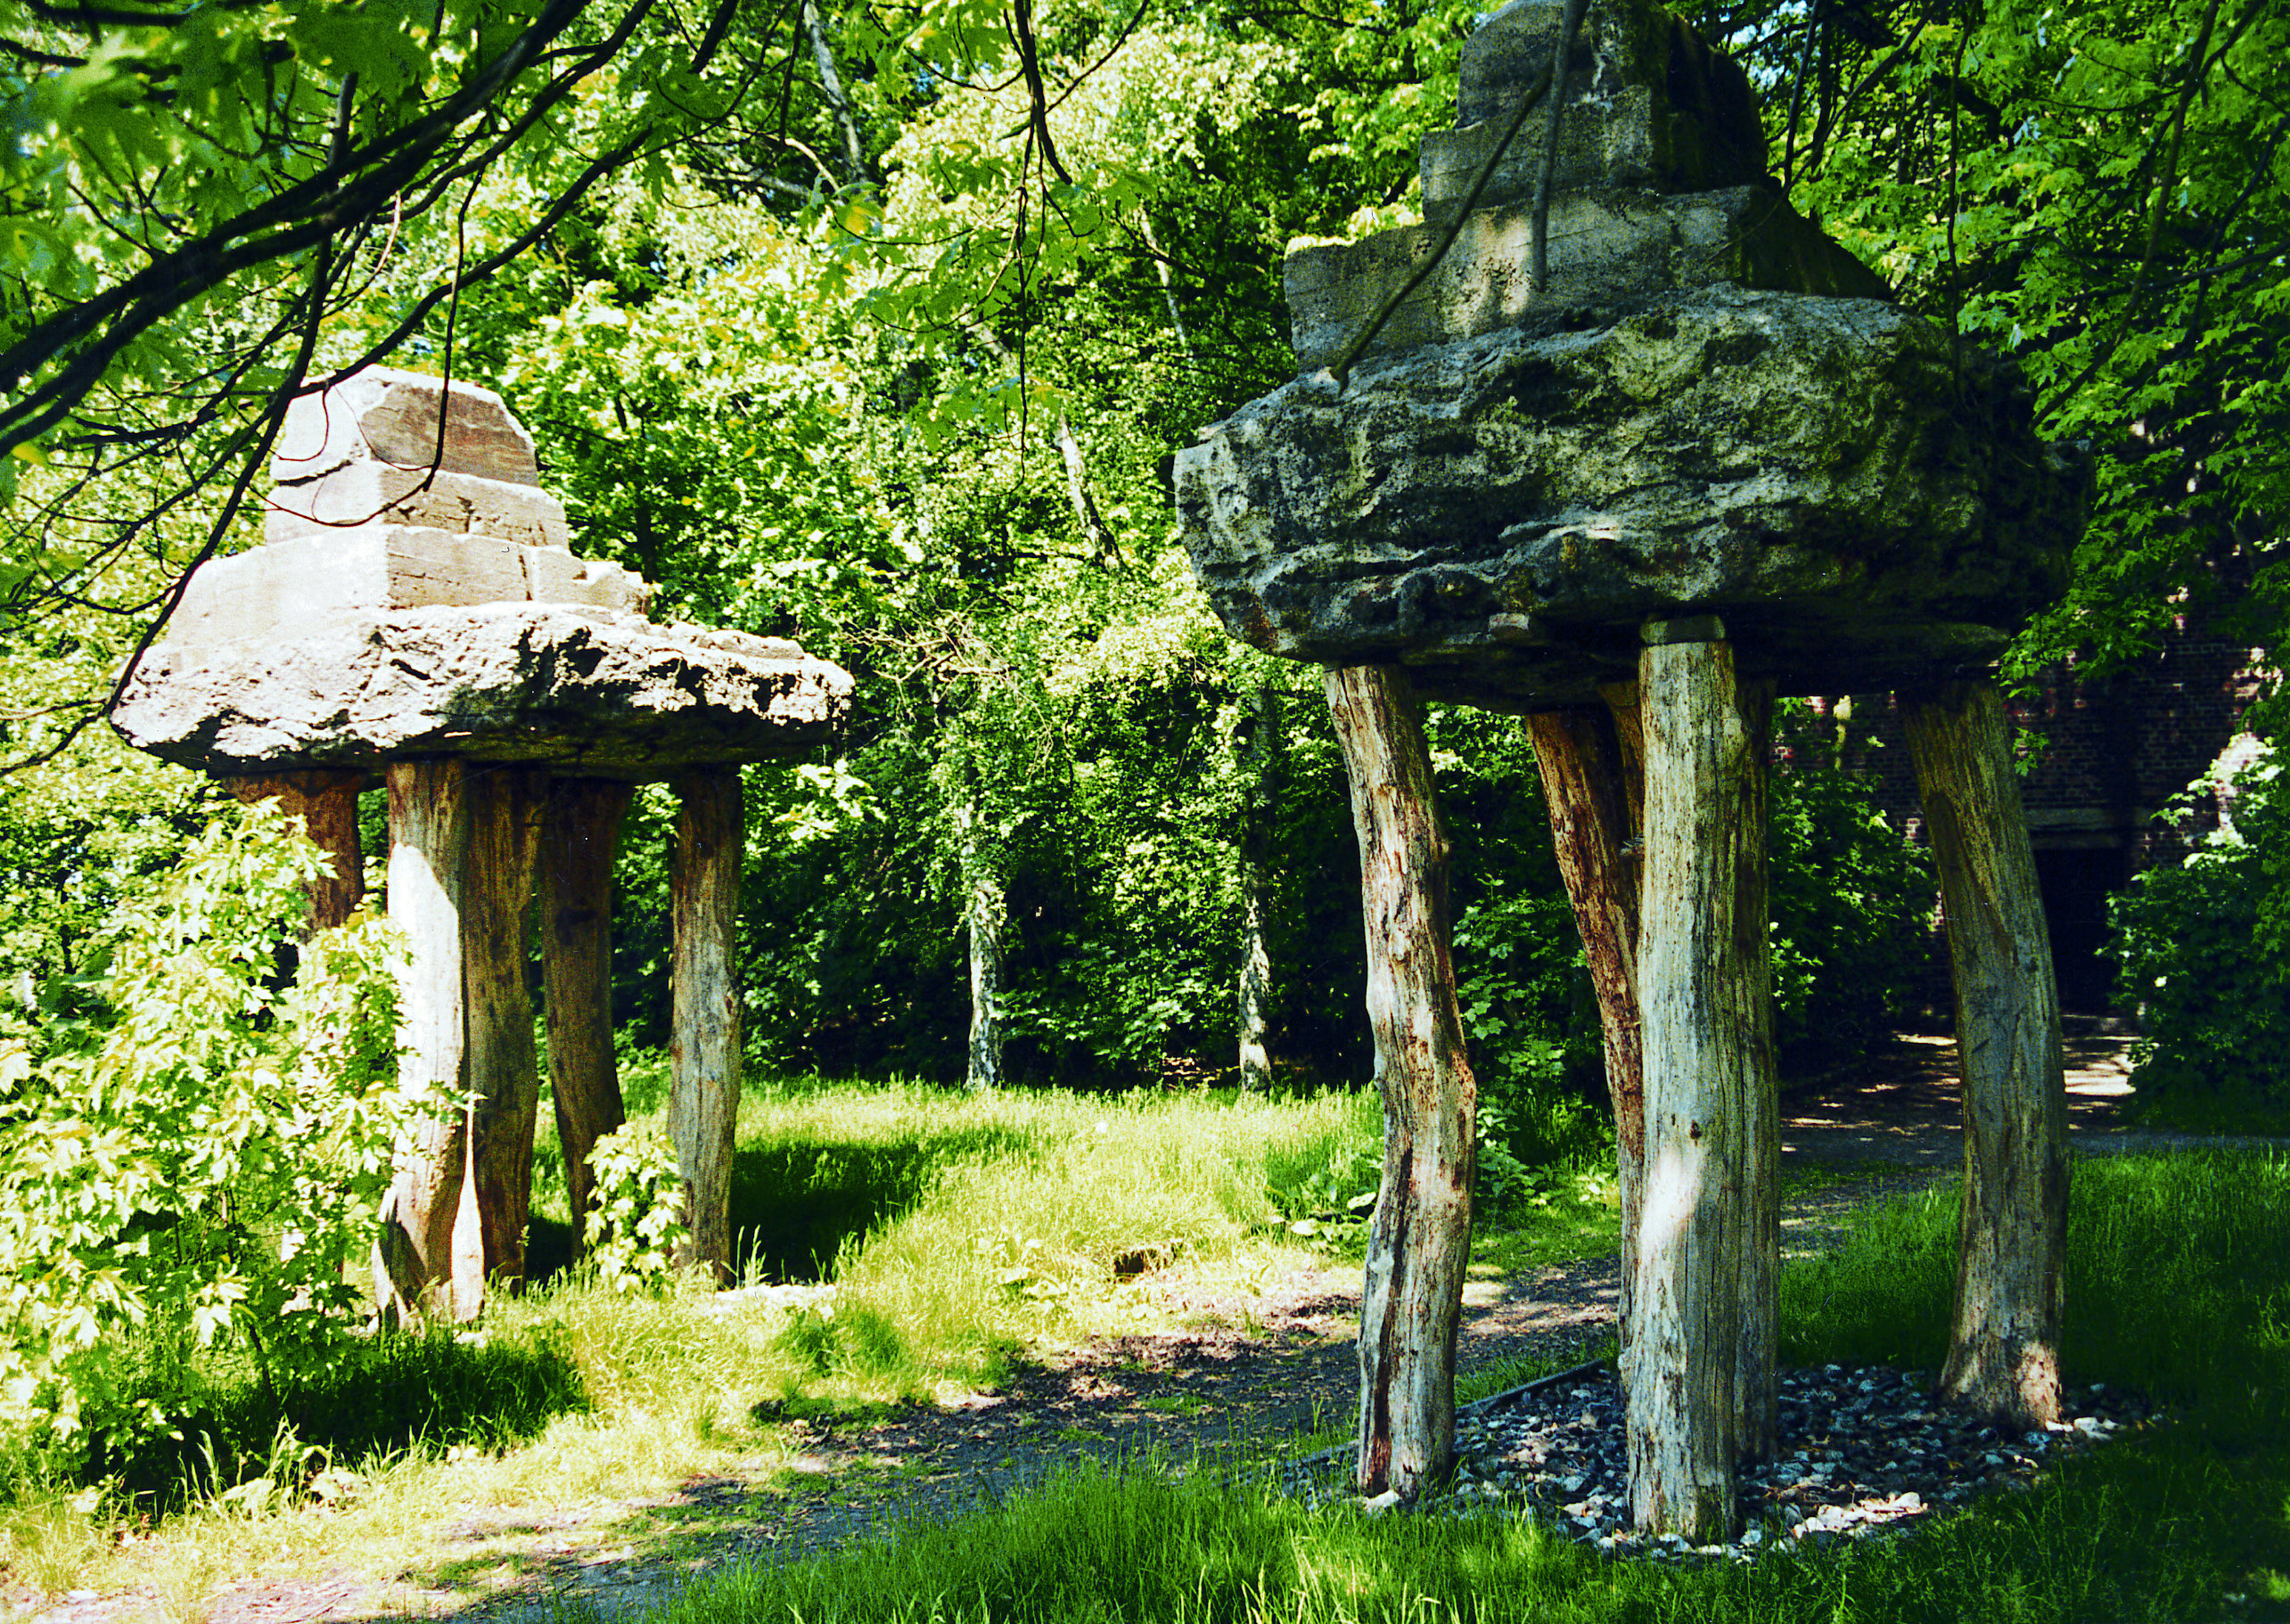 rheinelbe sculpture woods, herman prigann, photo annette berger